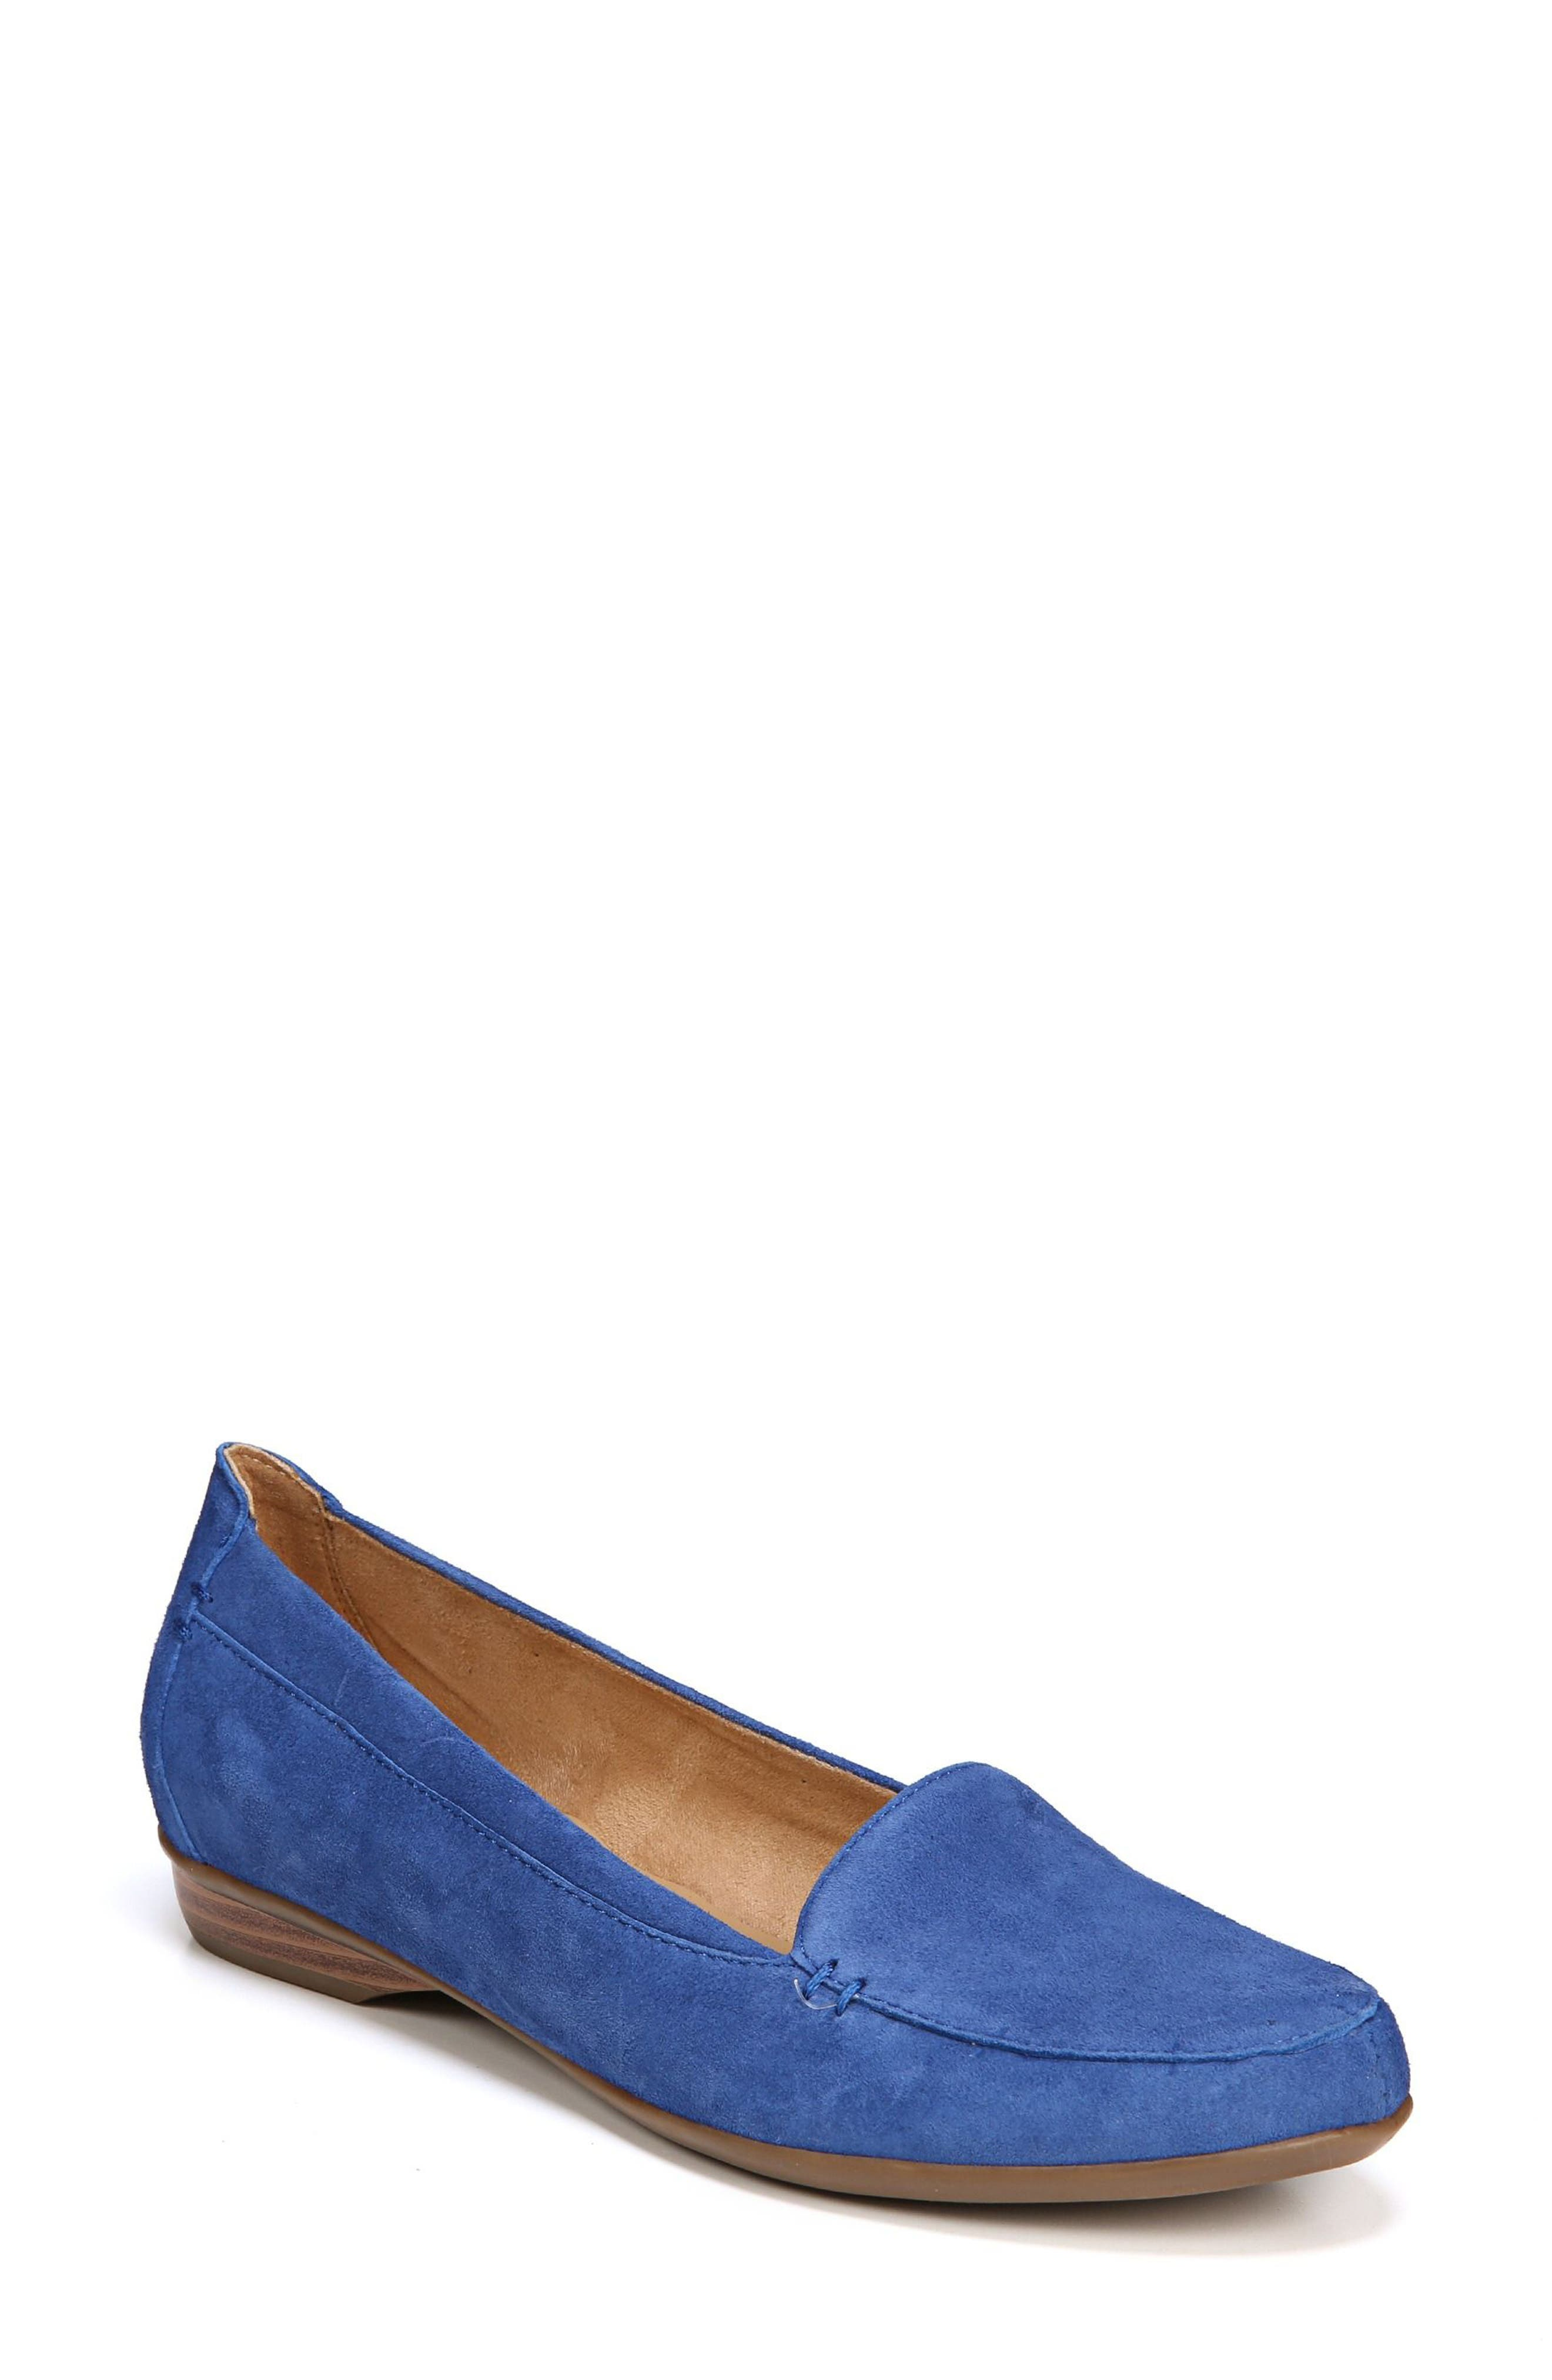 NATURALIZER 'Saban' Leather Loafer, Main, color, FRENCH BLUE SUEDE